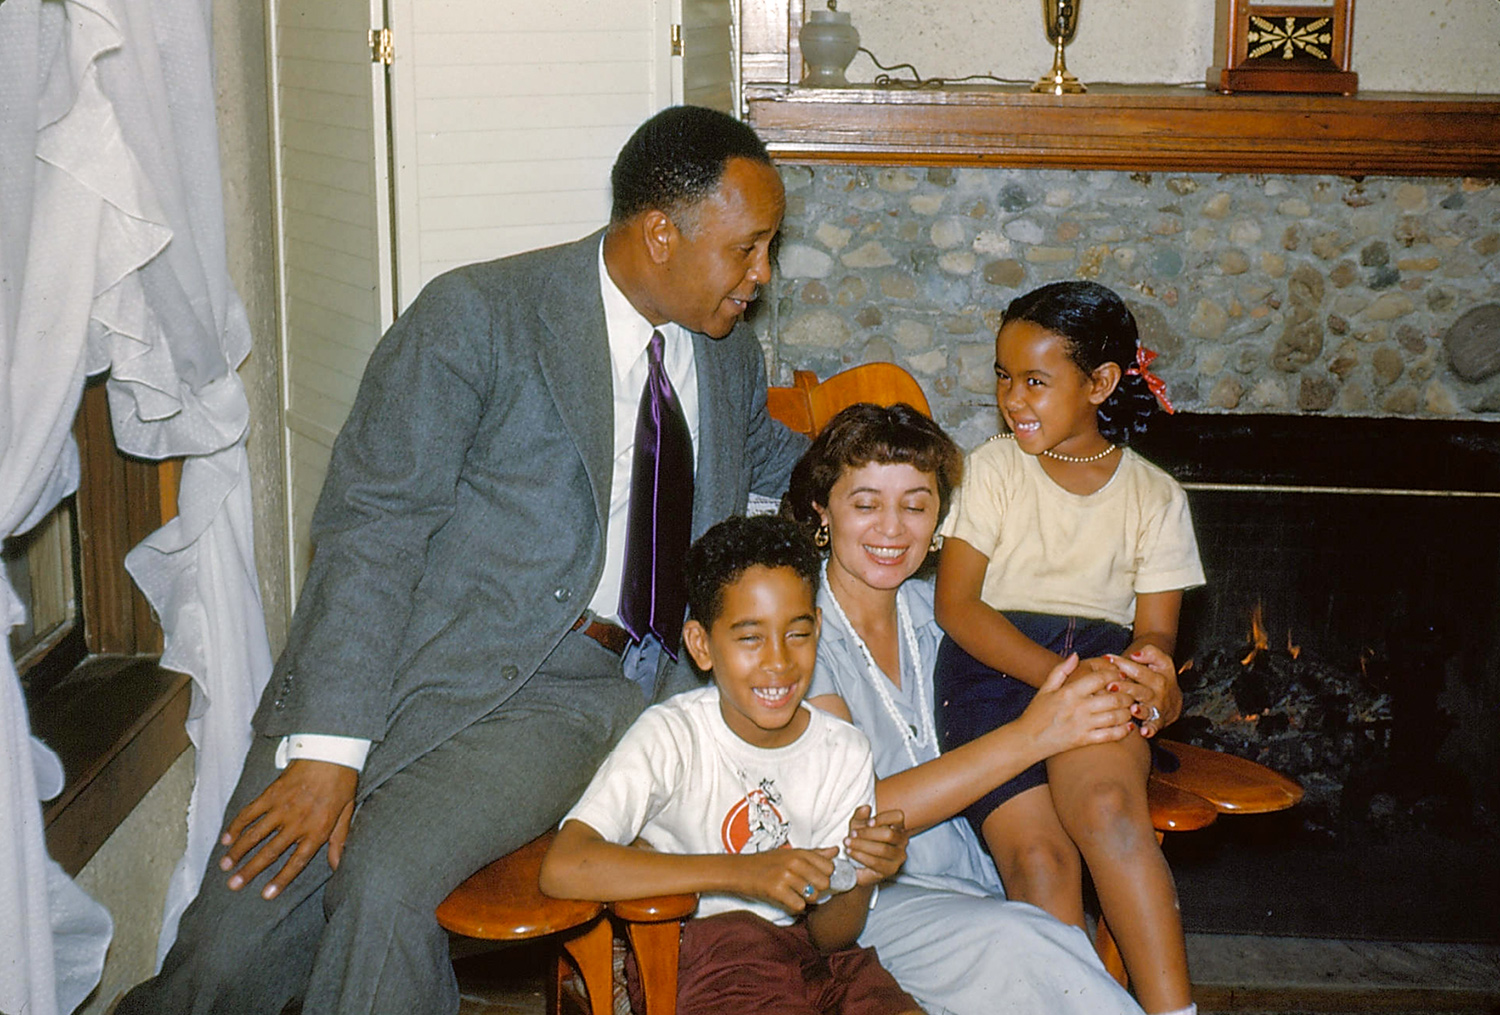 Percy Julian sits on the arm of a chair in which his wife and son are seated. His daughter sits on the opposite arm.